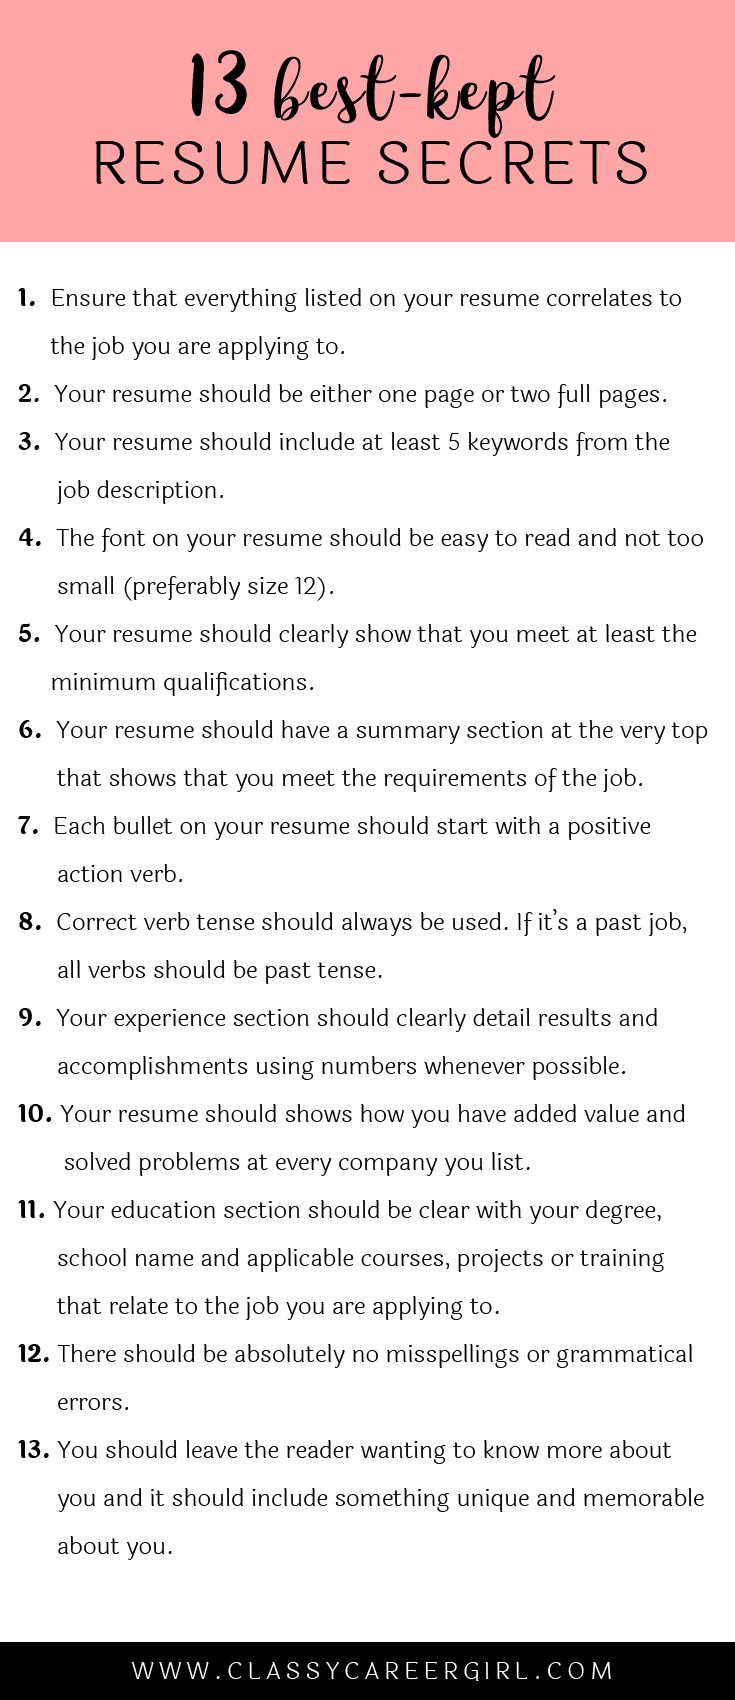 Opposenewapstandardsus  Inspiring  Ideas About Resume On Pinterest  Cv Format Resume Cv And  With Handsome Some Hiring Managers Will Toss Your Resume Out If You Dont Know These  With Cool Resume To Cv Also Dental Hygiene Resume Sample In Addition Objective For Resume General And Example Of Resume Profile As Well As Legal Assistant Resume Examples Additionally What Not To Do On A Resume From Pinterestcom With Opposenewapstandardsus  Handsome  Ideas About Resume On Pinterest  Cv Format Resume Cv And  With Cool Some Hiring Managers Will Toss Your Resume Out If You Dont Know These  And Inspiring Resume To Cv Also Dental Hygiene Resume Sample In Addition Objective For Resume General From Pinterestcom